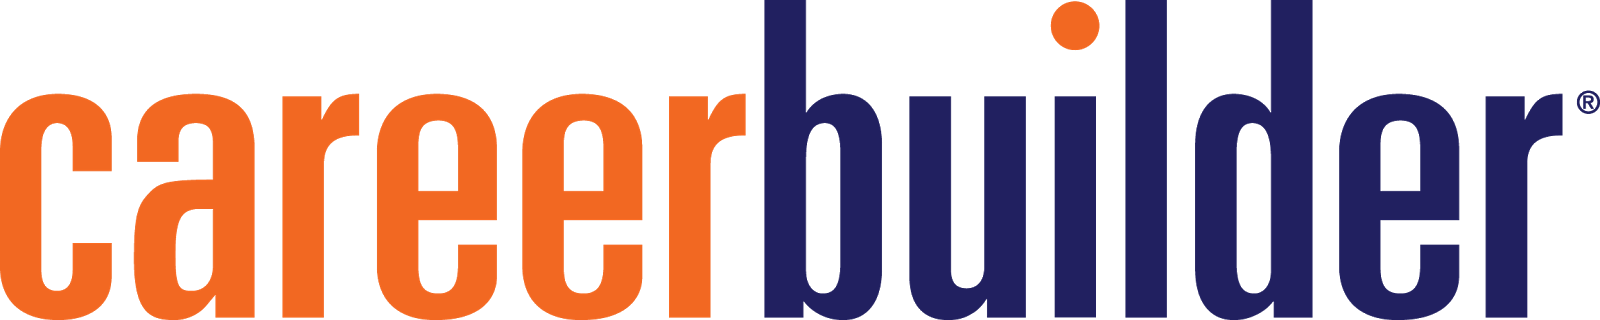 Career-Builder-Logo